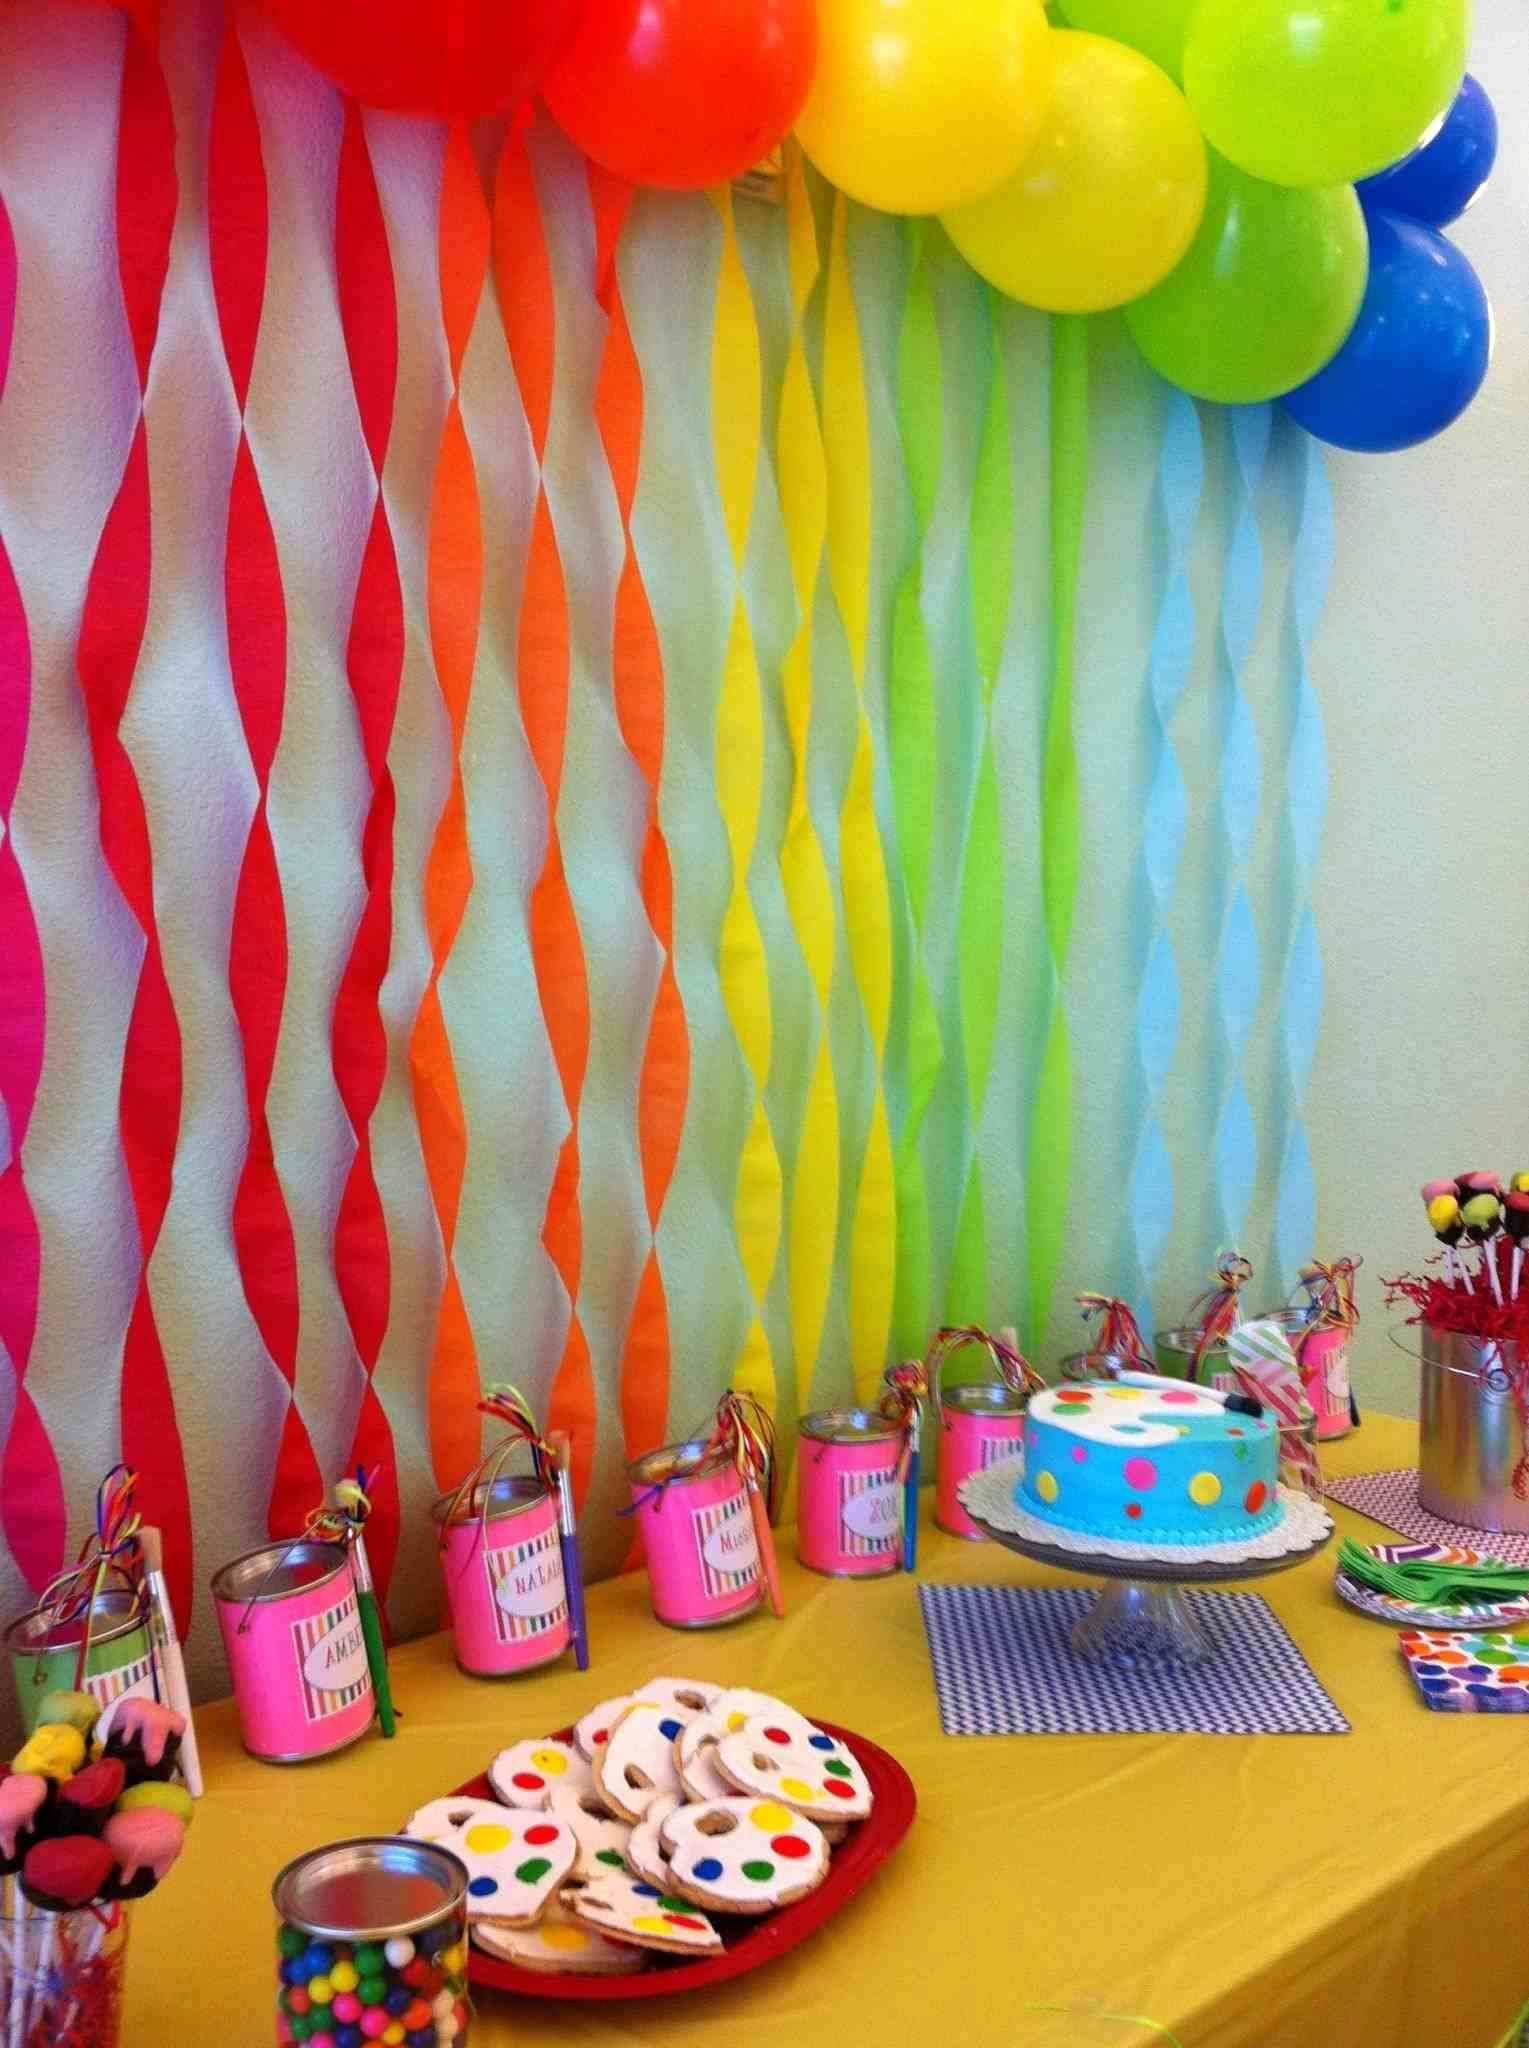 Wife Birthday Decoration Ideas at Home Unique Birthday Decoration Ideas at Home for A Girl